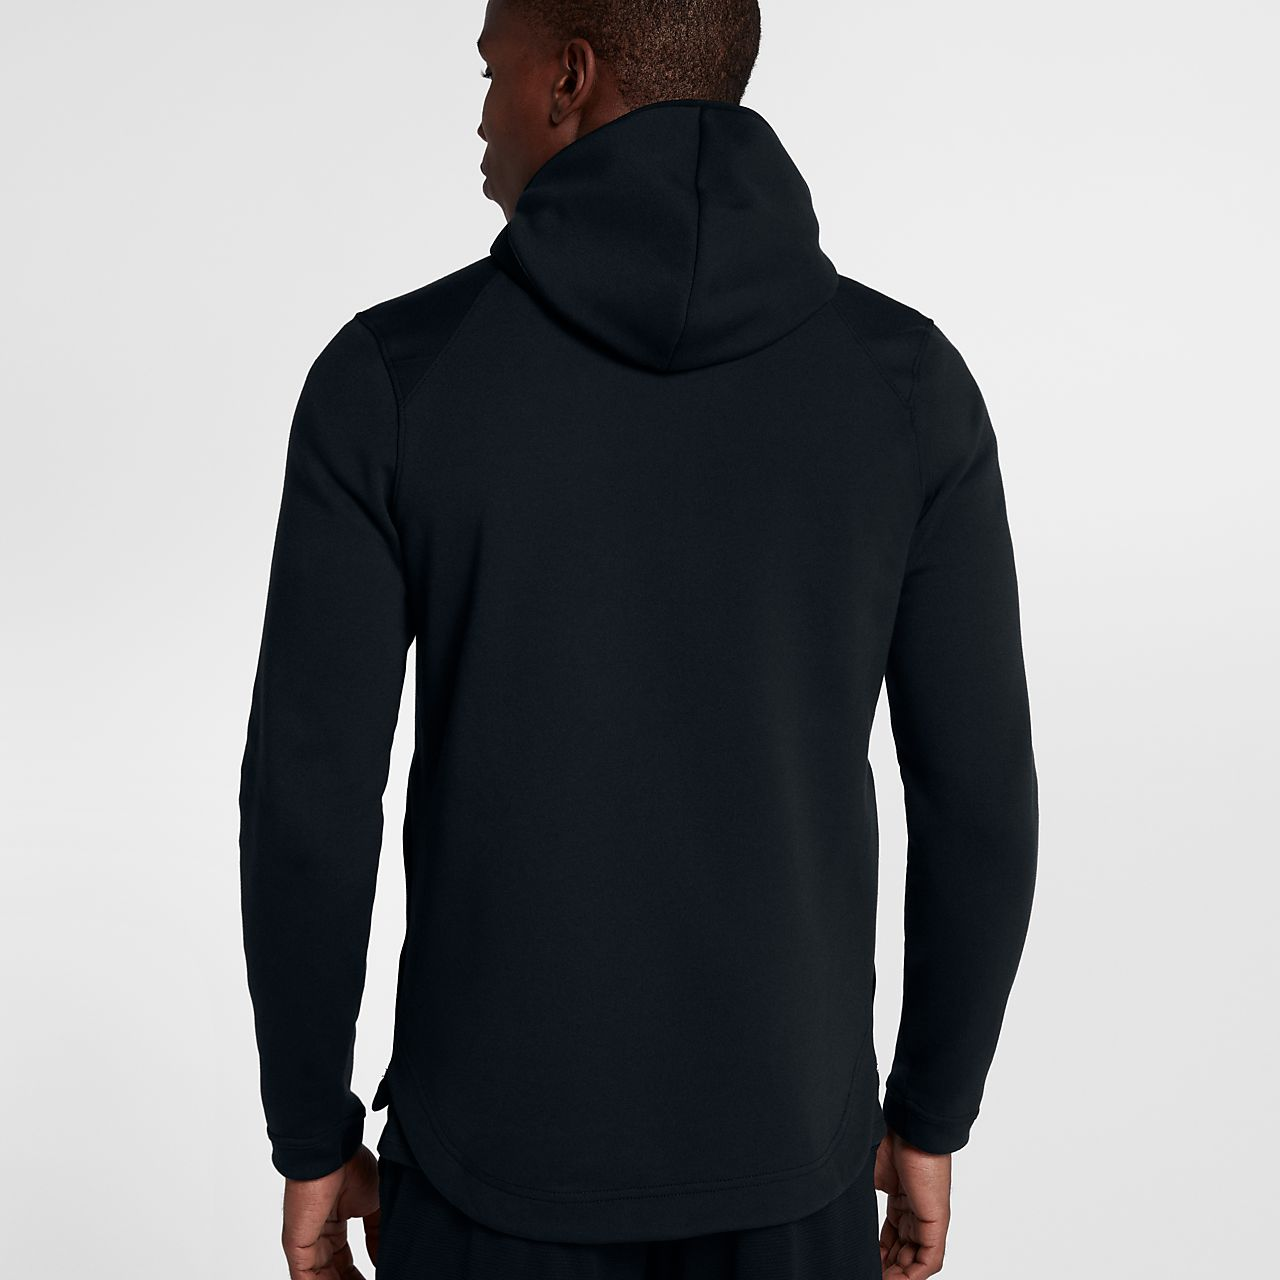 ... Nike Dry Hyper Elite Showtime Men's Full Zip Basketball Hoodie